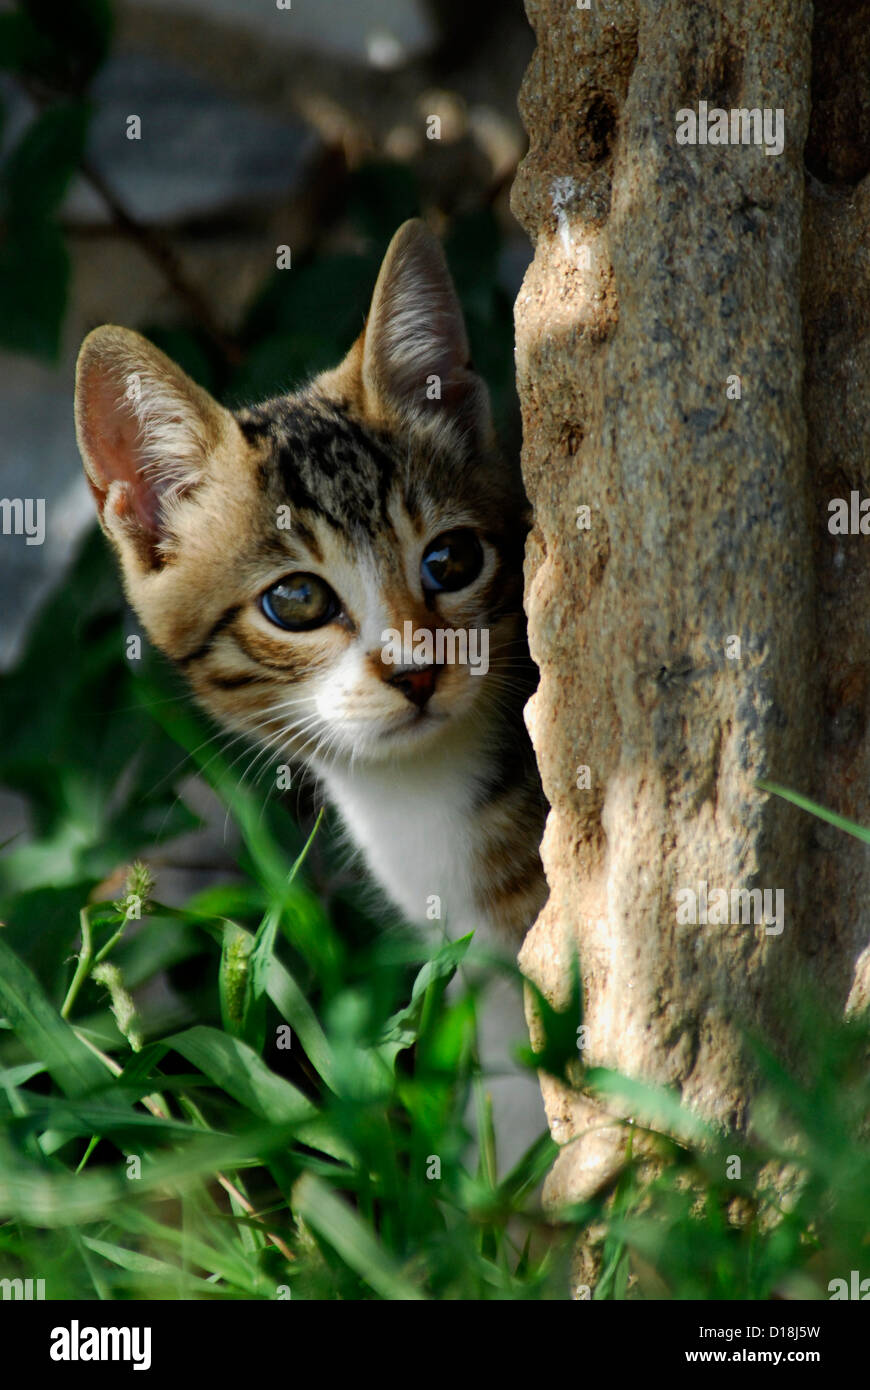 kitten, Tabby and White, peeps from behind a stone, portrait, Cyclades, Greece, Non-pedigree Shorthair, felis silvestris - Stock Image